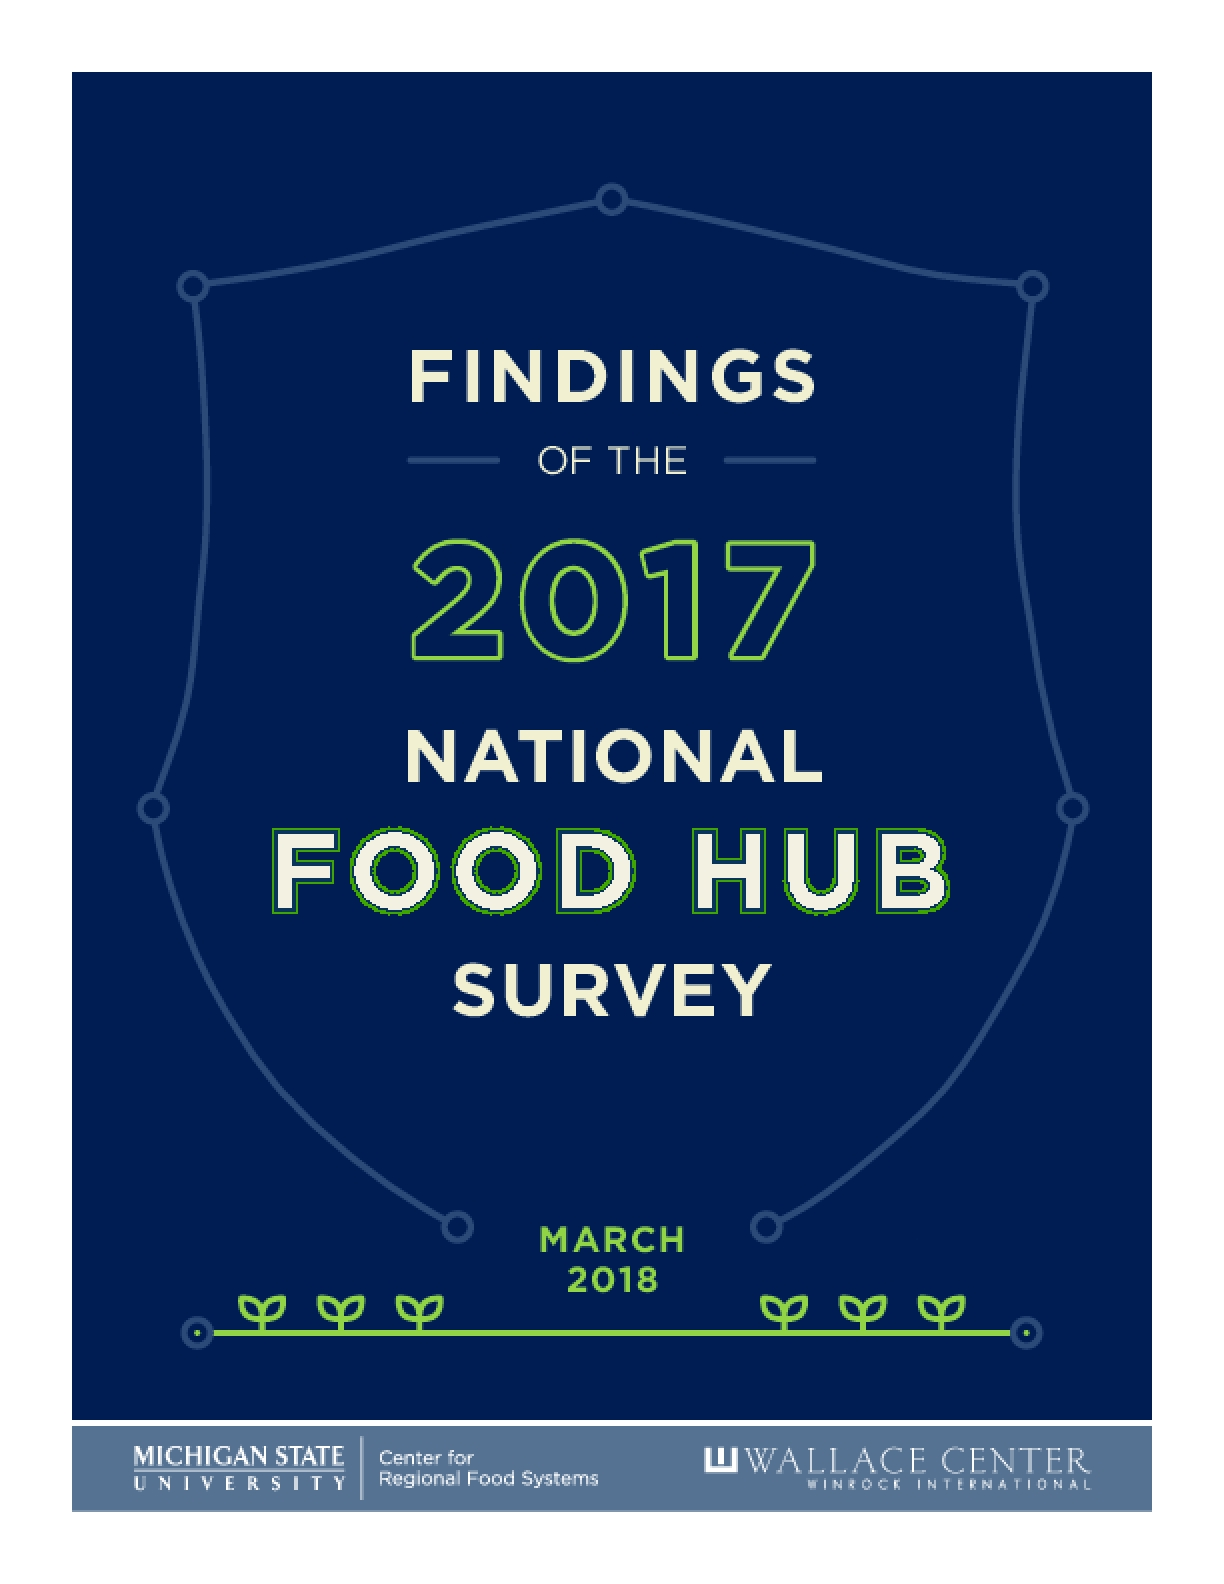 Findings of the 2017 National Food Hub Survey